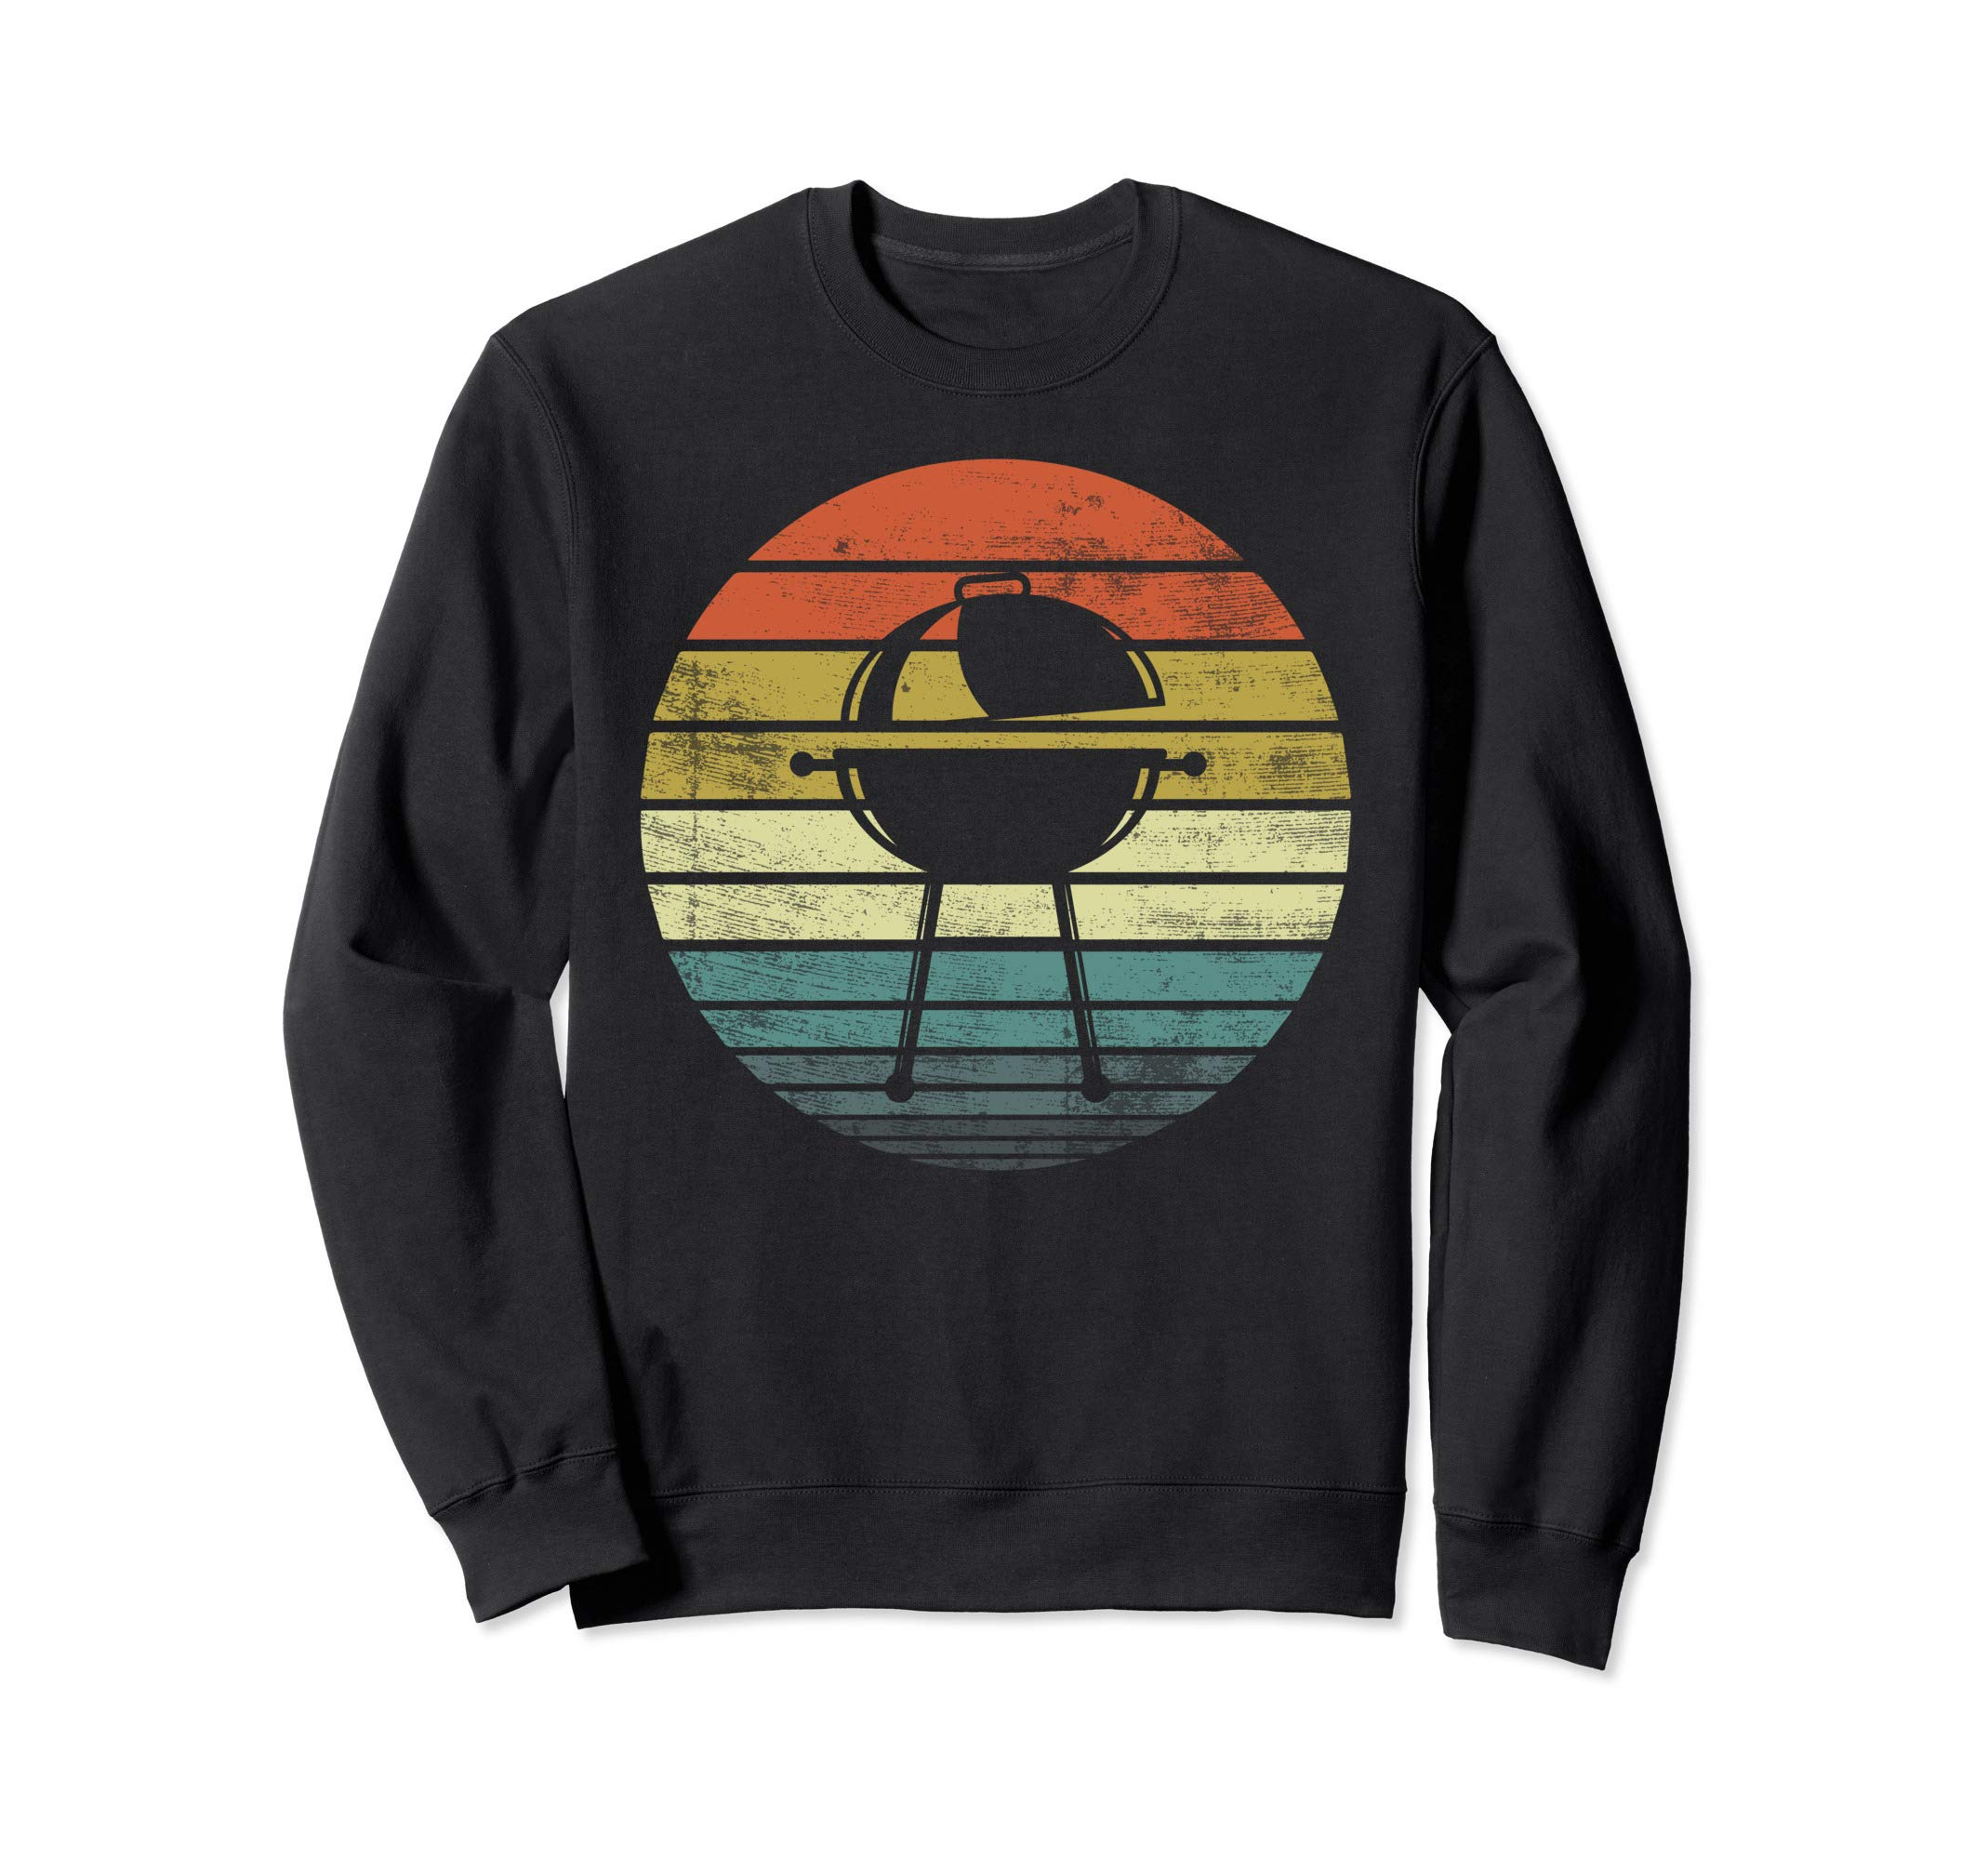 Funny Retro Sunset Barbecue BBQ Grilling Cooking Grill Gifts Sweatshirt by Grill BBQ Barbecue Grilling Apparel